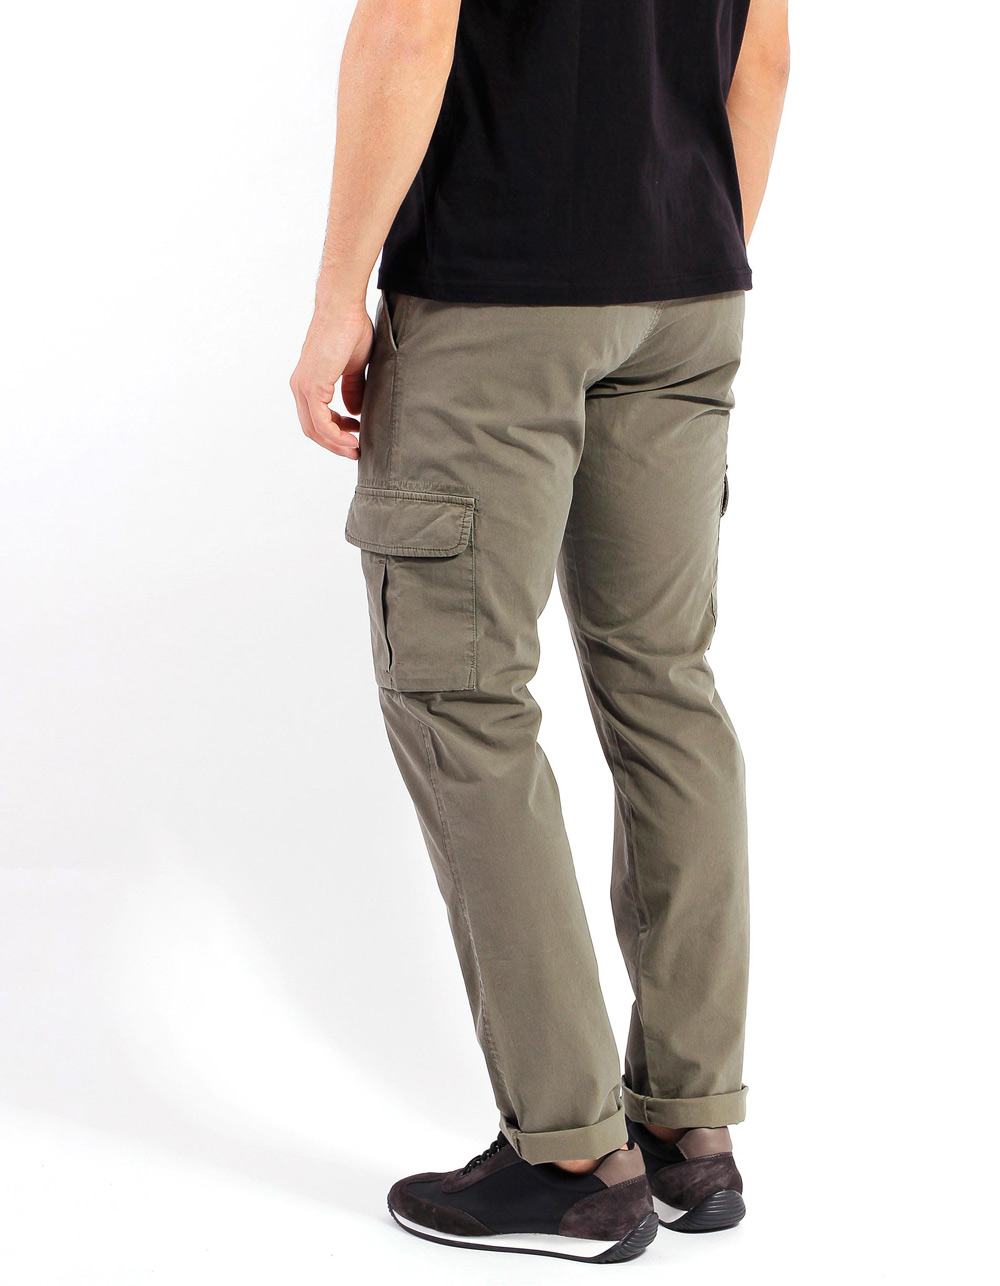 Cargo khaky trousers - Backside